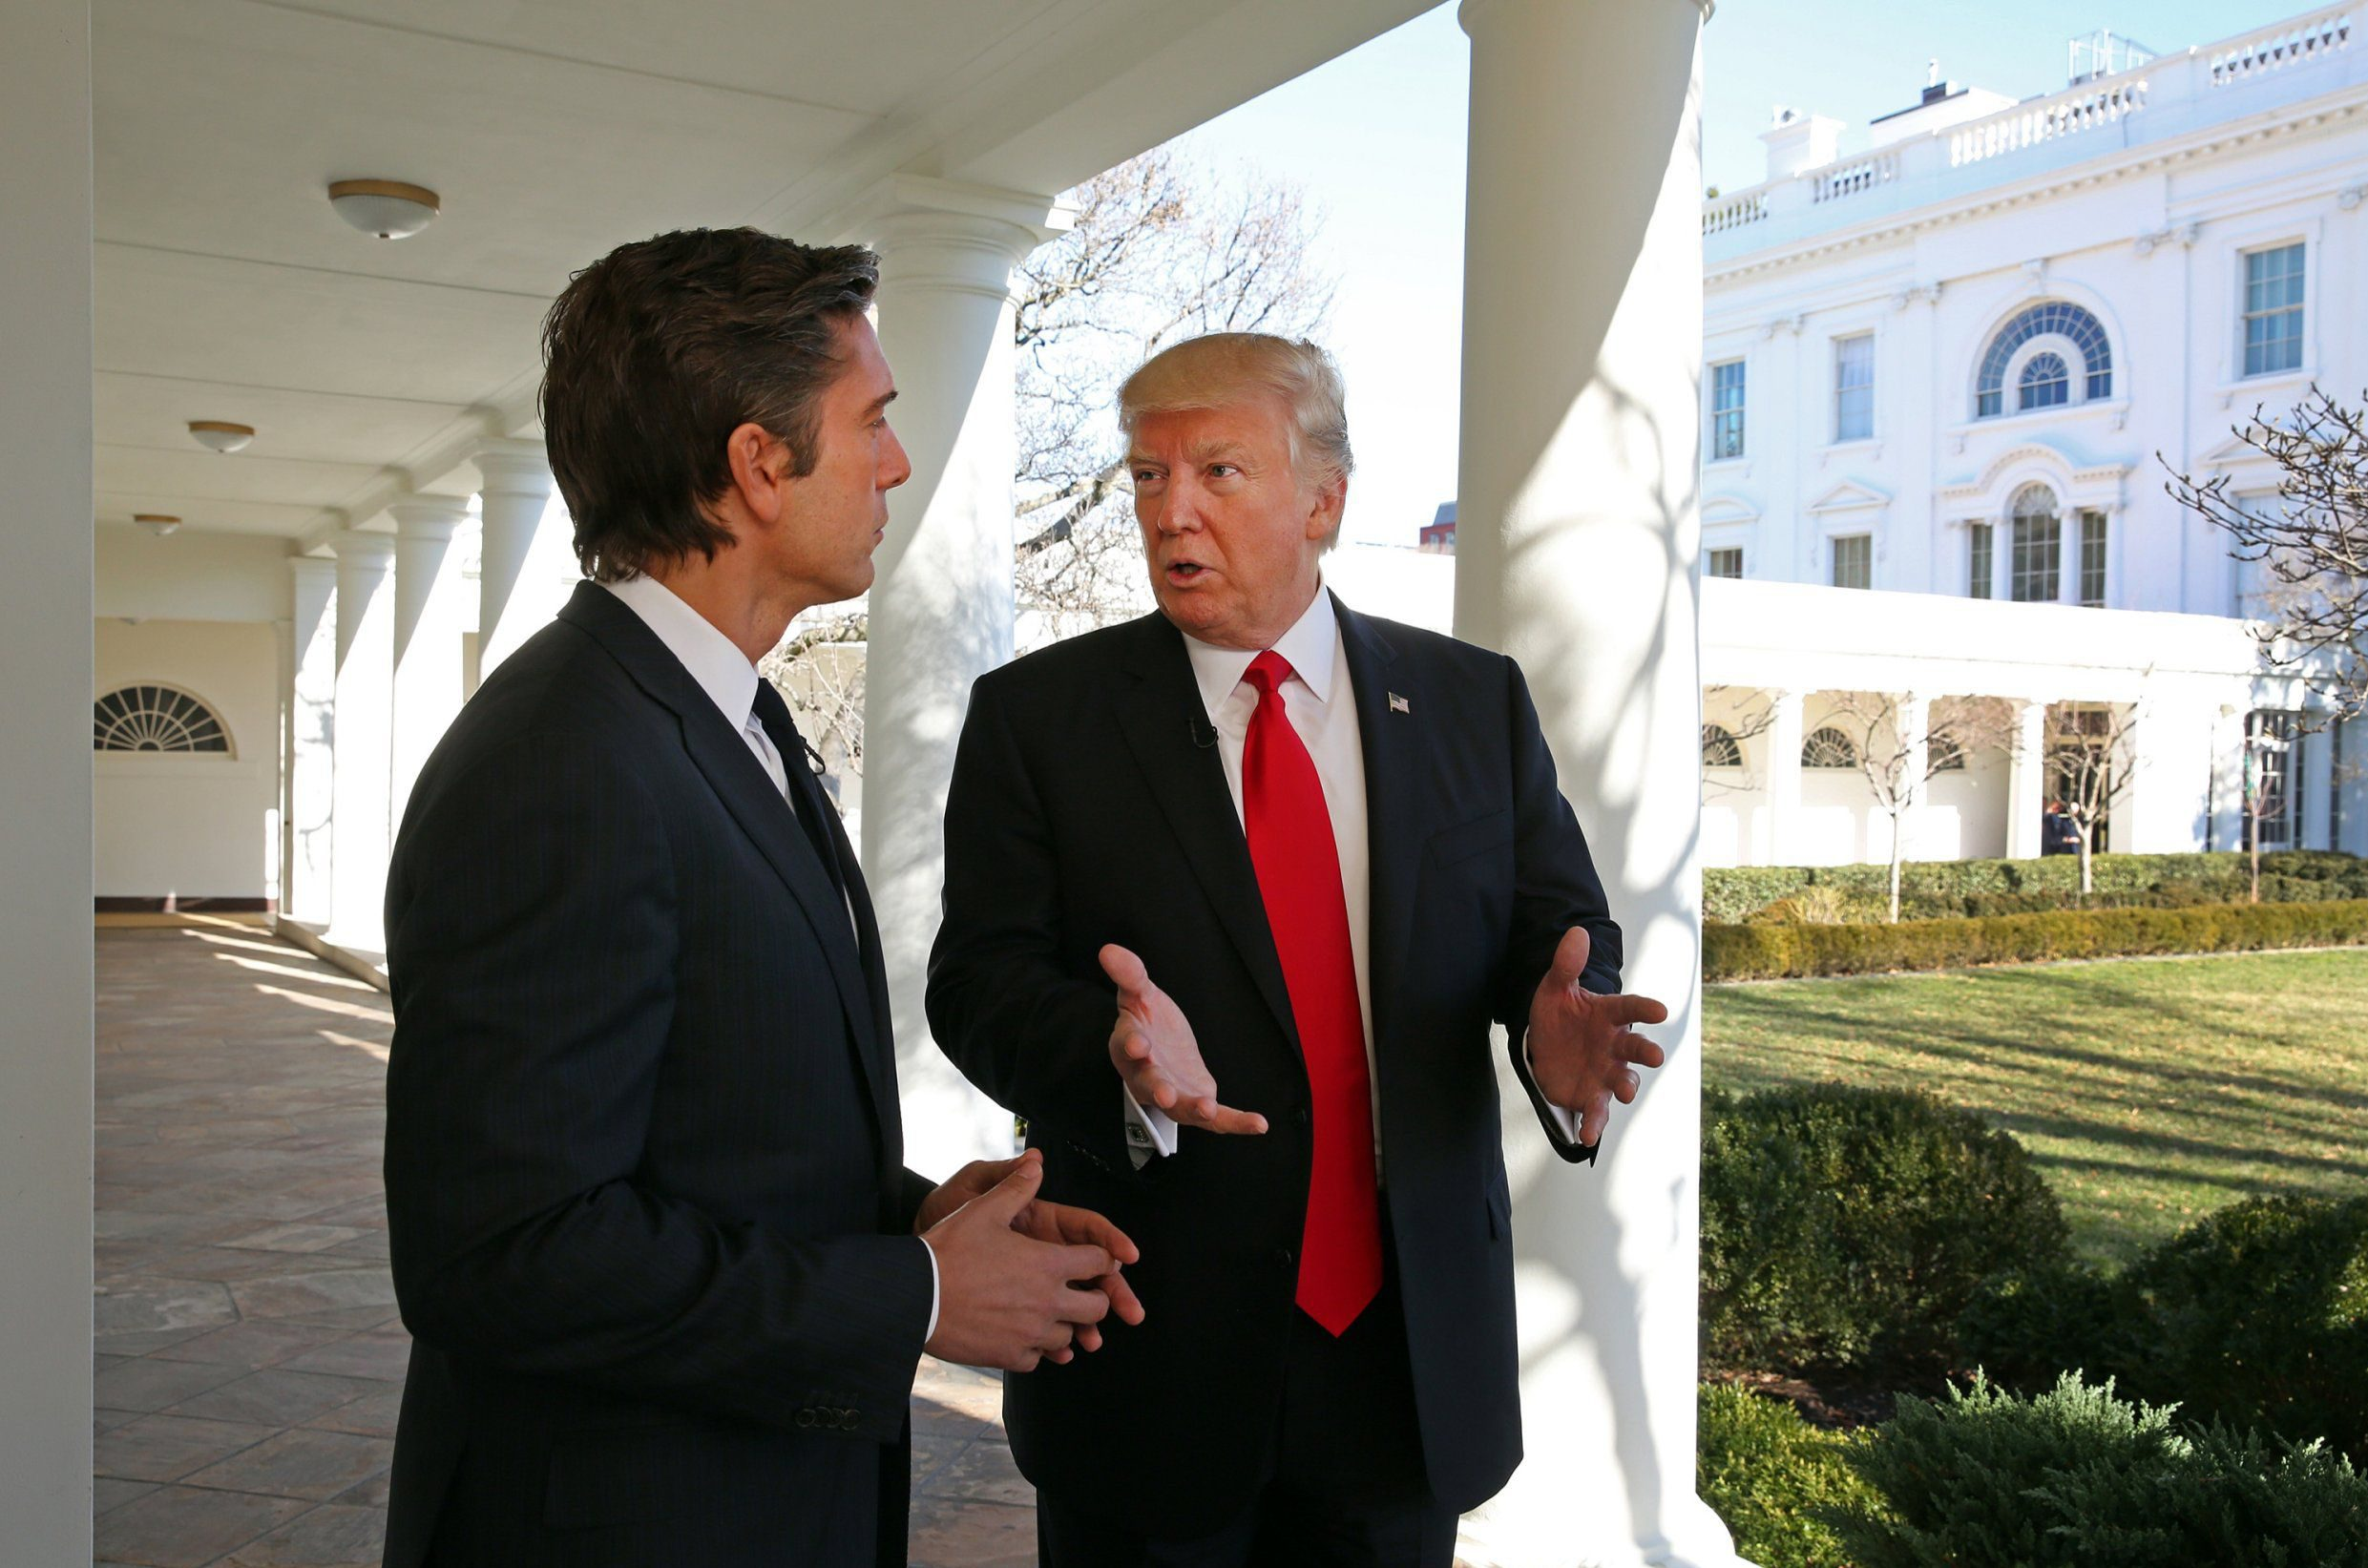 "WORLD NEWS TONIGHT WITH DAVID MUIR - ABC News' David Muir talks to President Donald J. Trump from the White House in Washington, DC in his first one-on-one television interview since being sworn in as the 45th president of the United States. The exclusive one-hour primetime special ""President Trump: The First Interview"" with David Muir airs on Wednesday, January 25, 2017 at 10 p.m. ET on the ABC Television Network. (Photo by Martin H. Simon/ABC via Getty Images) DAVID MUIR, PRESIDENT DONALD TRUMP"